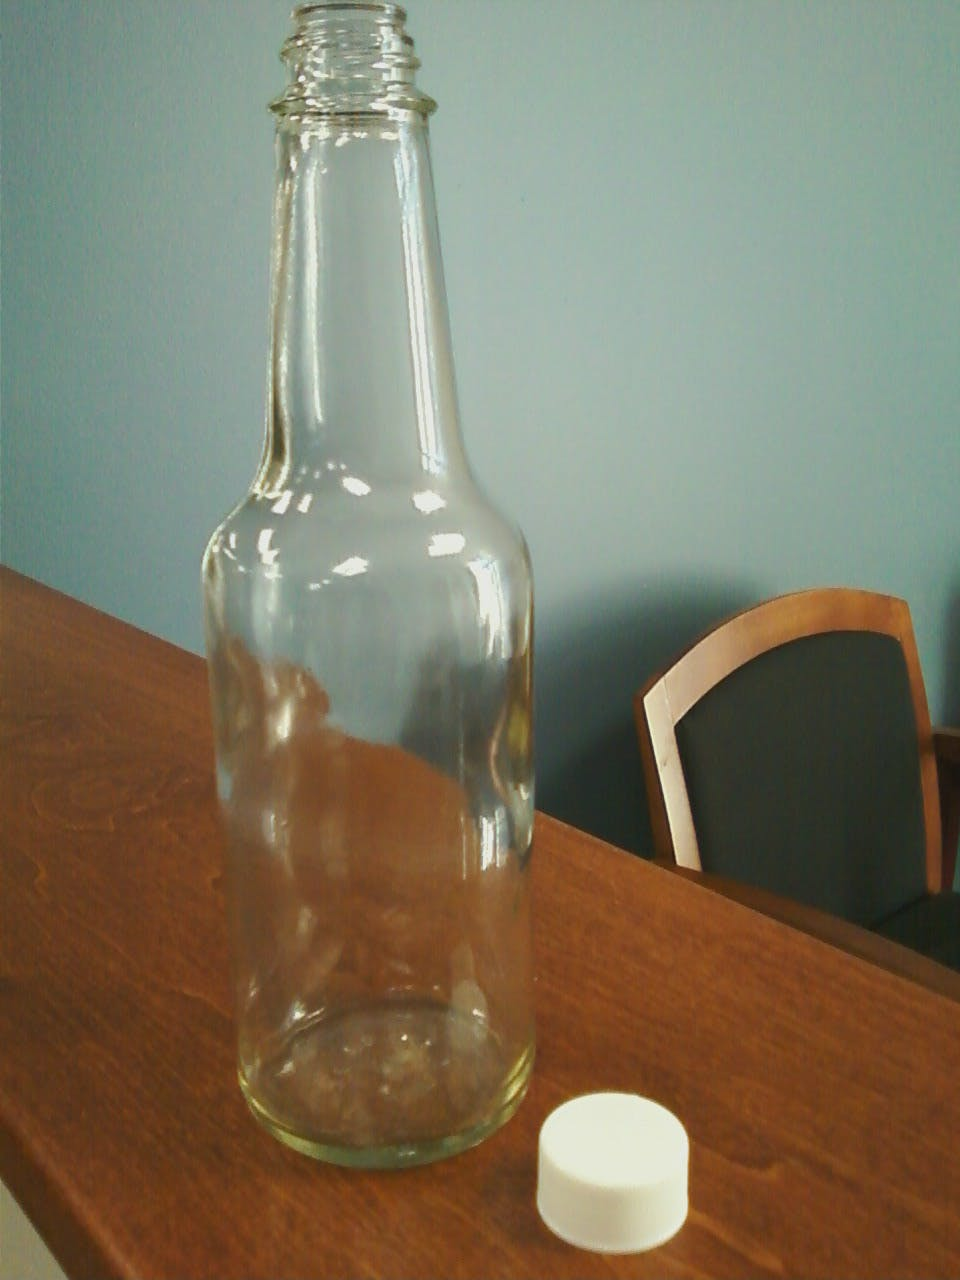 10 oz woozie glass bottle Glass bottle sold by Inmark Packaging